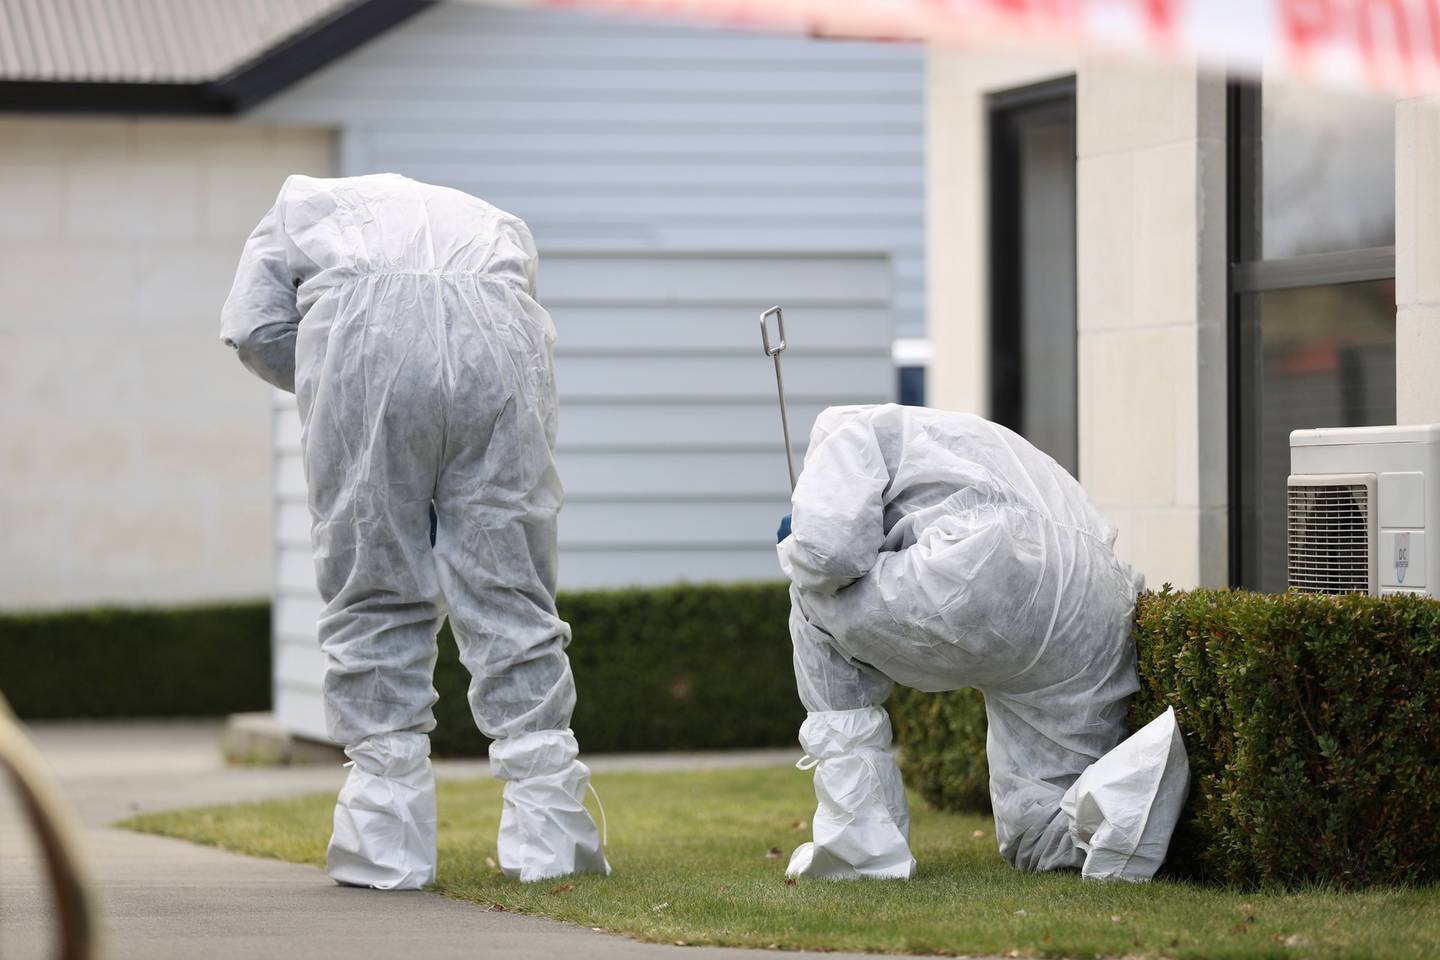 The police forensic team have arrived at the property and a scene examination will get underway soon. Photo / George Heard